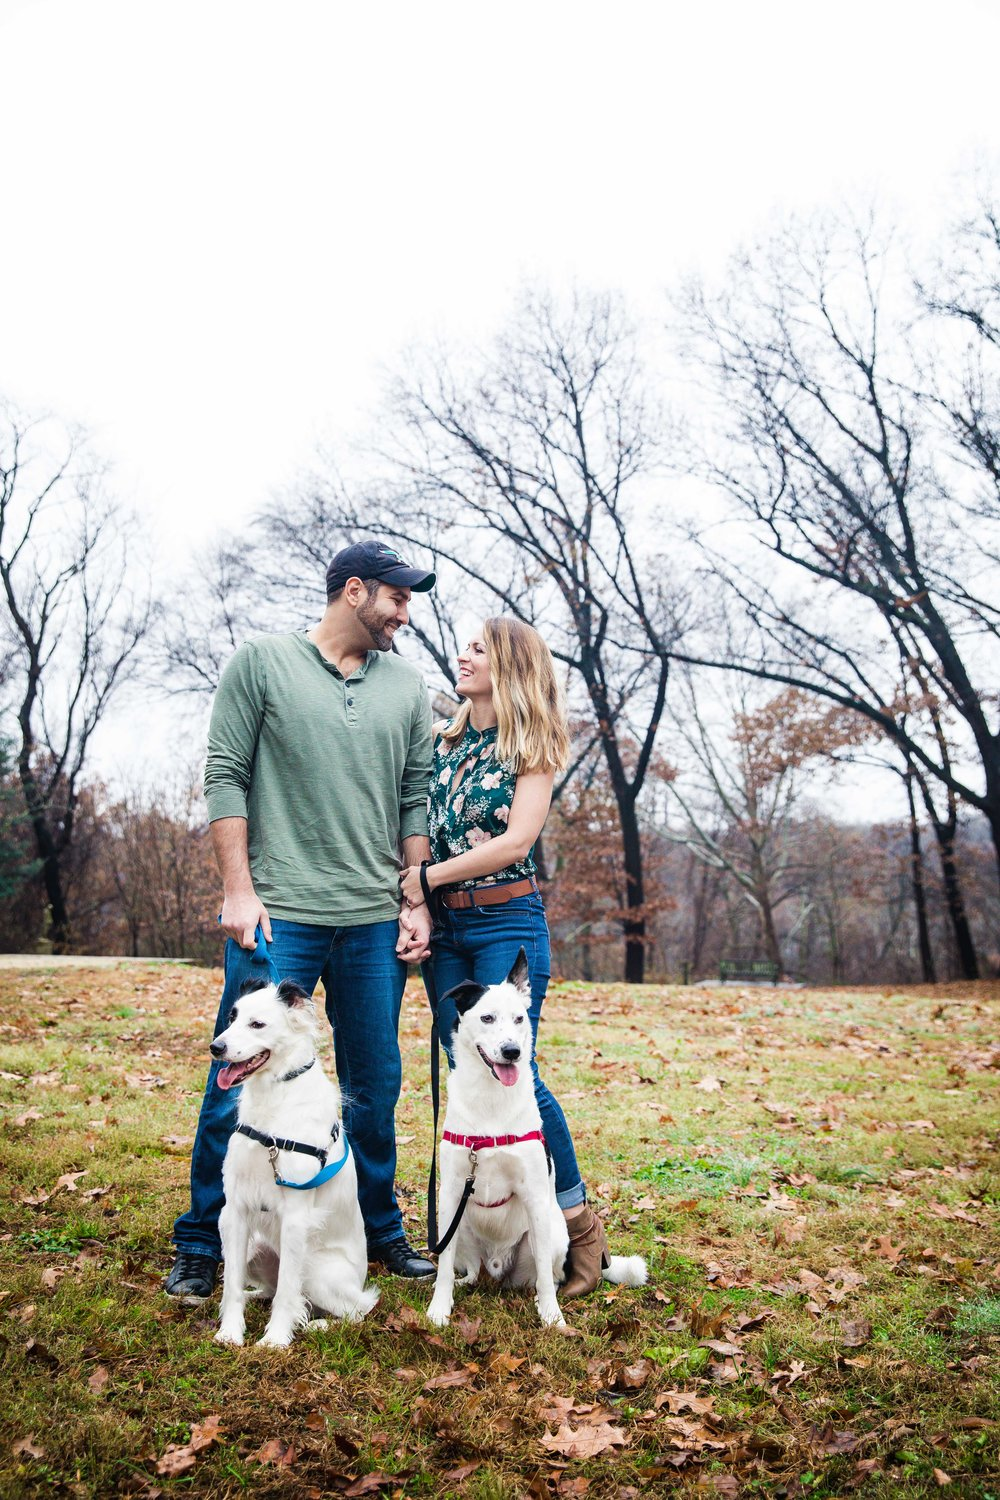 Strawberry Mansion - Family Photoshoot with Dogs-5.jpg